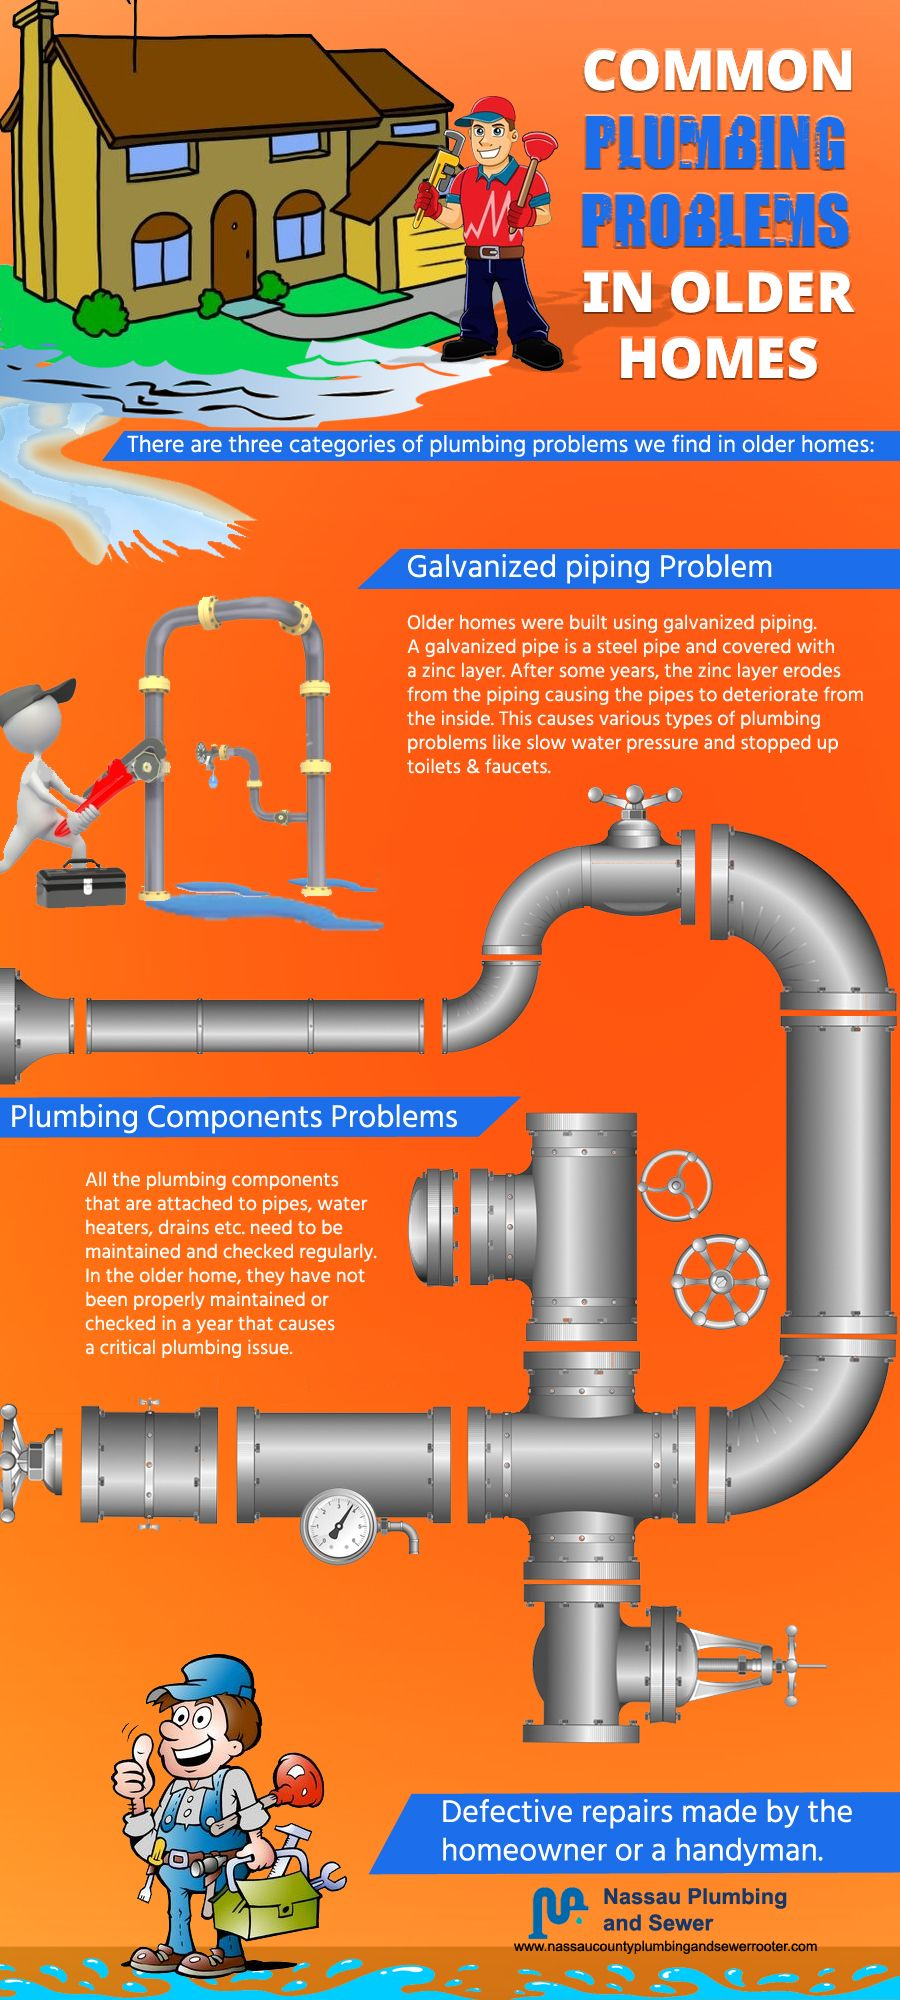 Common Plumbing Problems In Older Homes Infographic There Are Three Categories Of Plumbing Problems We Find In Olde Boiler Repair Plumbing Plumbing Problems